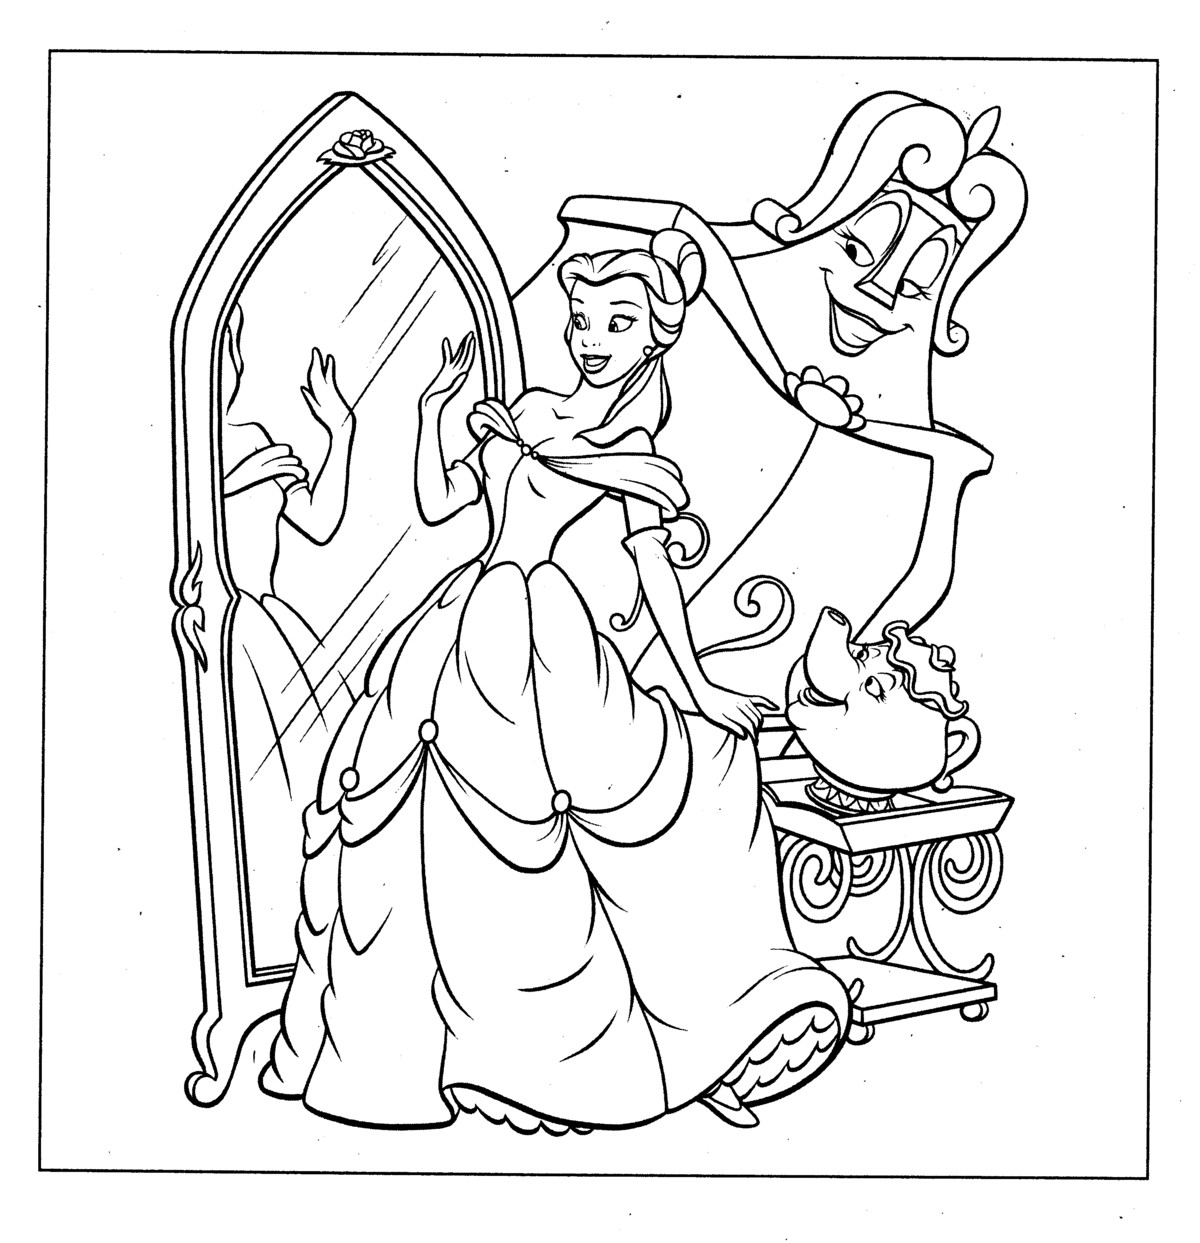 coloring pictures of princesses princess coloring pages of pictures coloring princesses